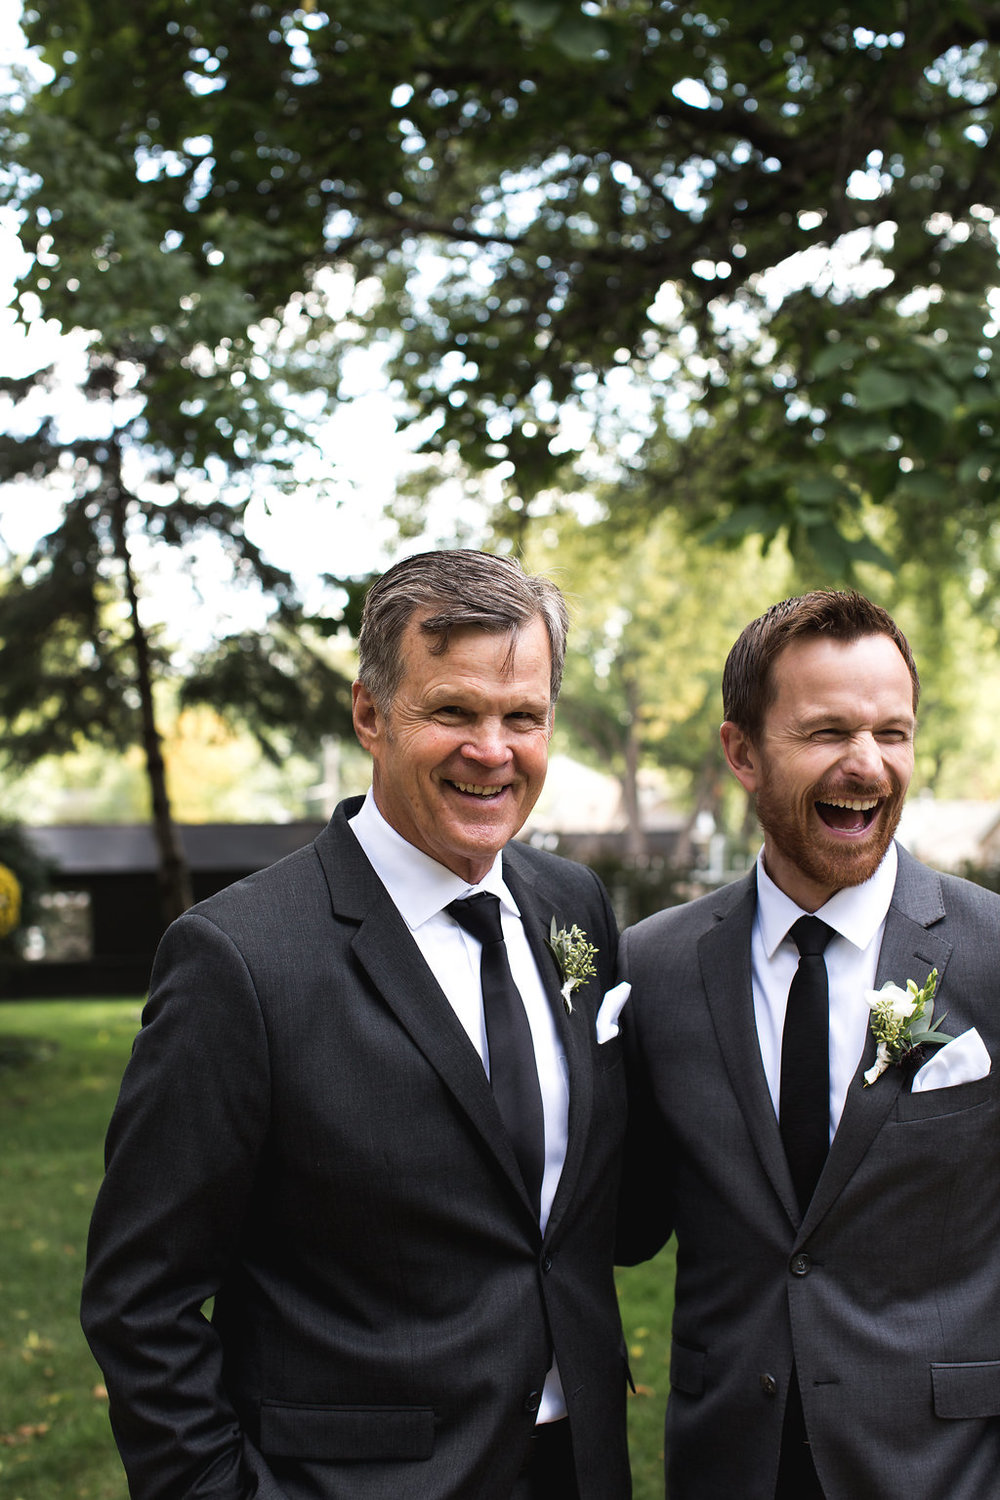 Aaron Rice Photography | Annunciation Church wedding | Groom and dad photo | Sixpence Events day of coordinating |